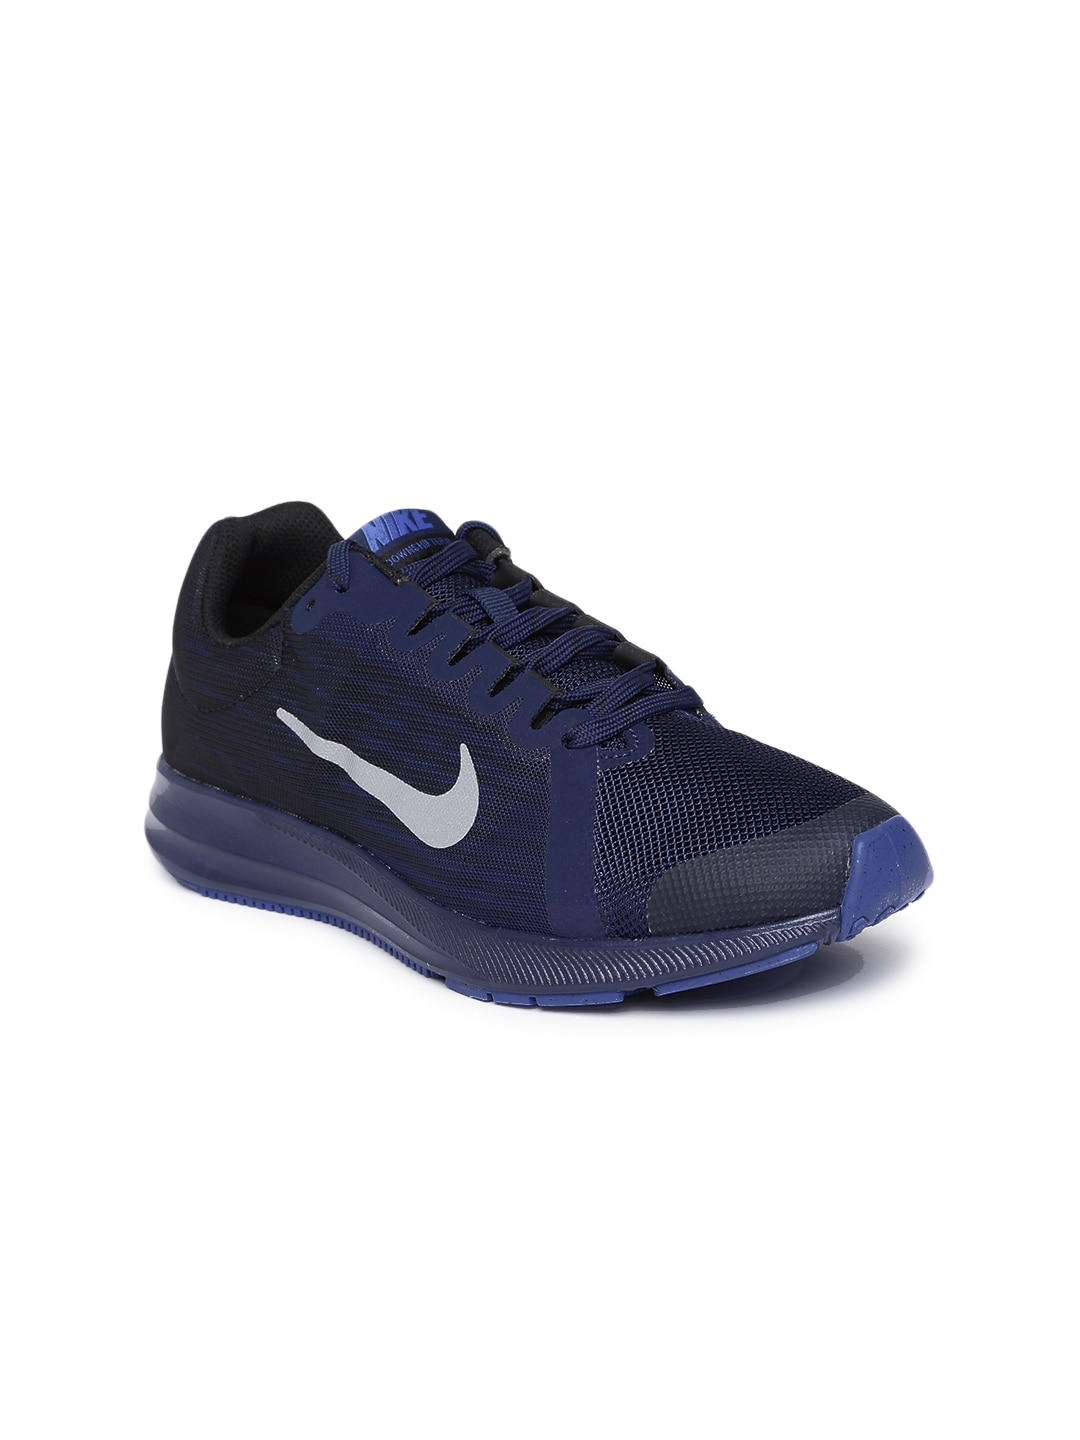 buy popular 7d9d0 1b32f Boys Sports Shoes - Buy Sports Shoes For Kids Online in India